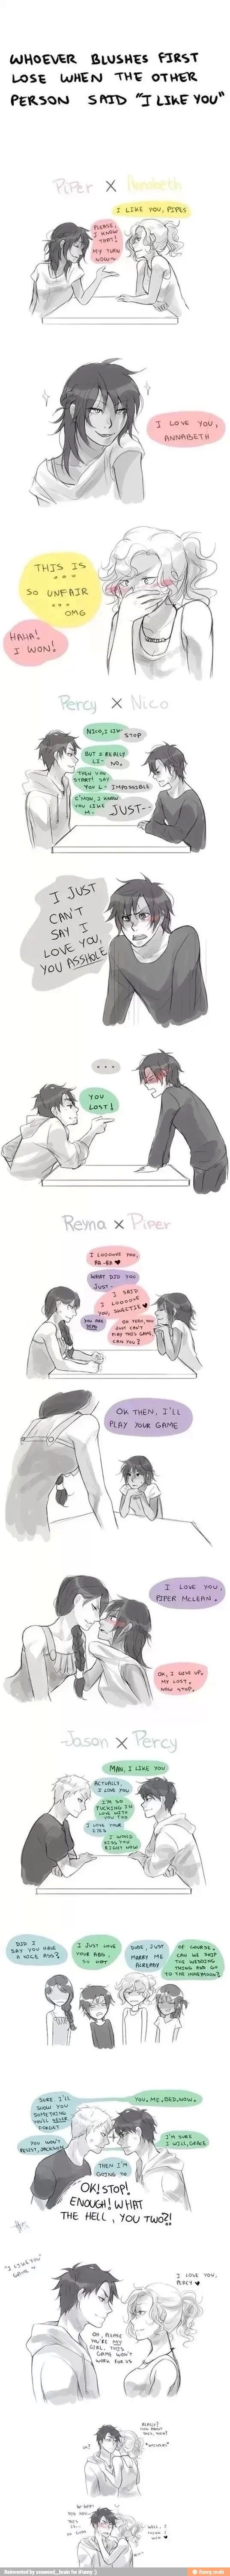 Blushing Game Pjo Hoo Style Percy And Jason Omgs Percy Jackson Percy Jackson Books Percy Jackson Funny